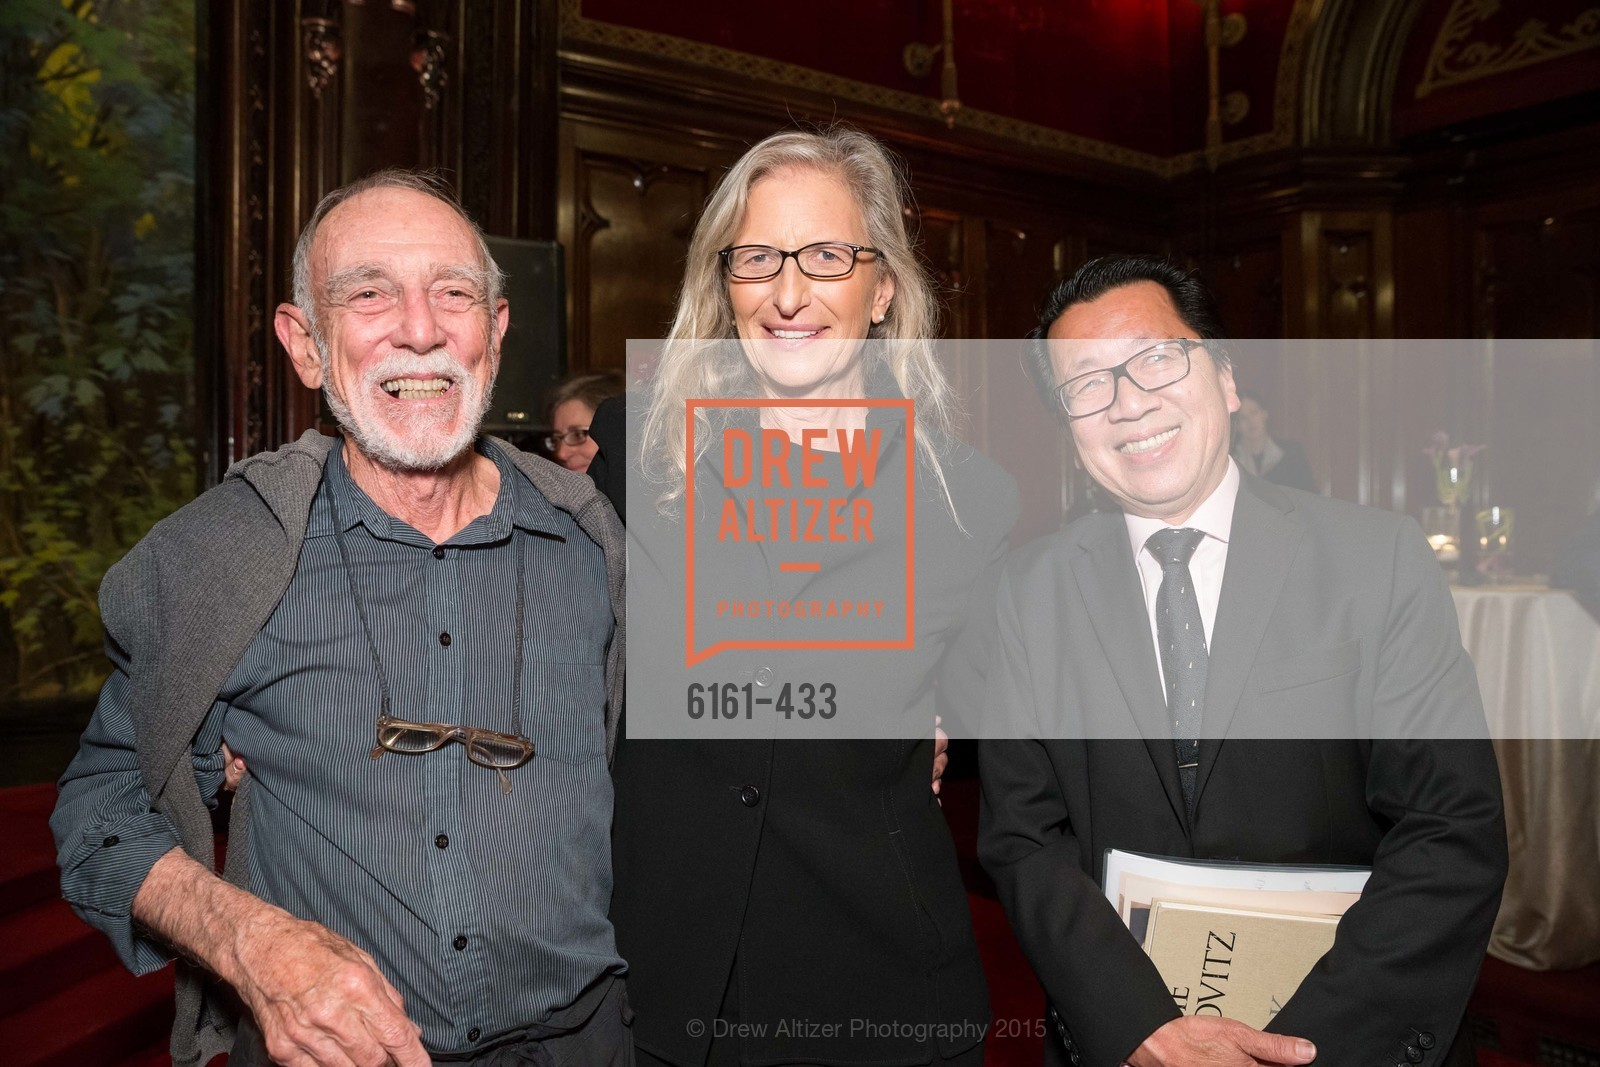 Robert Kingsbury, Annie Leibovitz, Ben Fong-Torres, SFMOMA Contemporary Vision Award, Regency Ballroom. 1300 Van Ness, November 3rd, 2015,Drew Altizer, Drew Altizer Photography, full-service event agency, private events, San Francisco photographer, photographer California